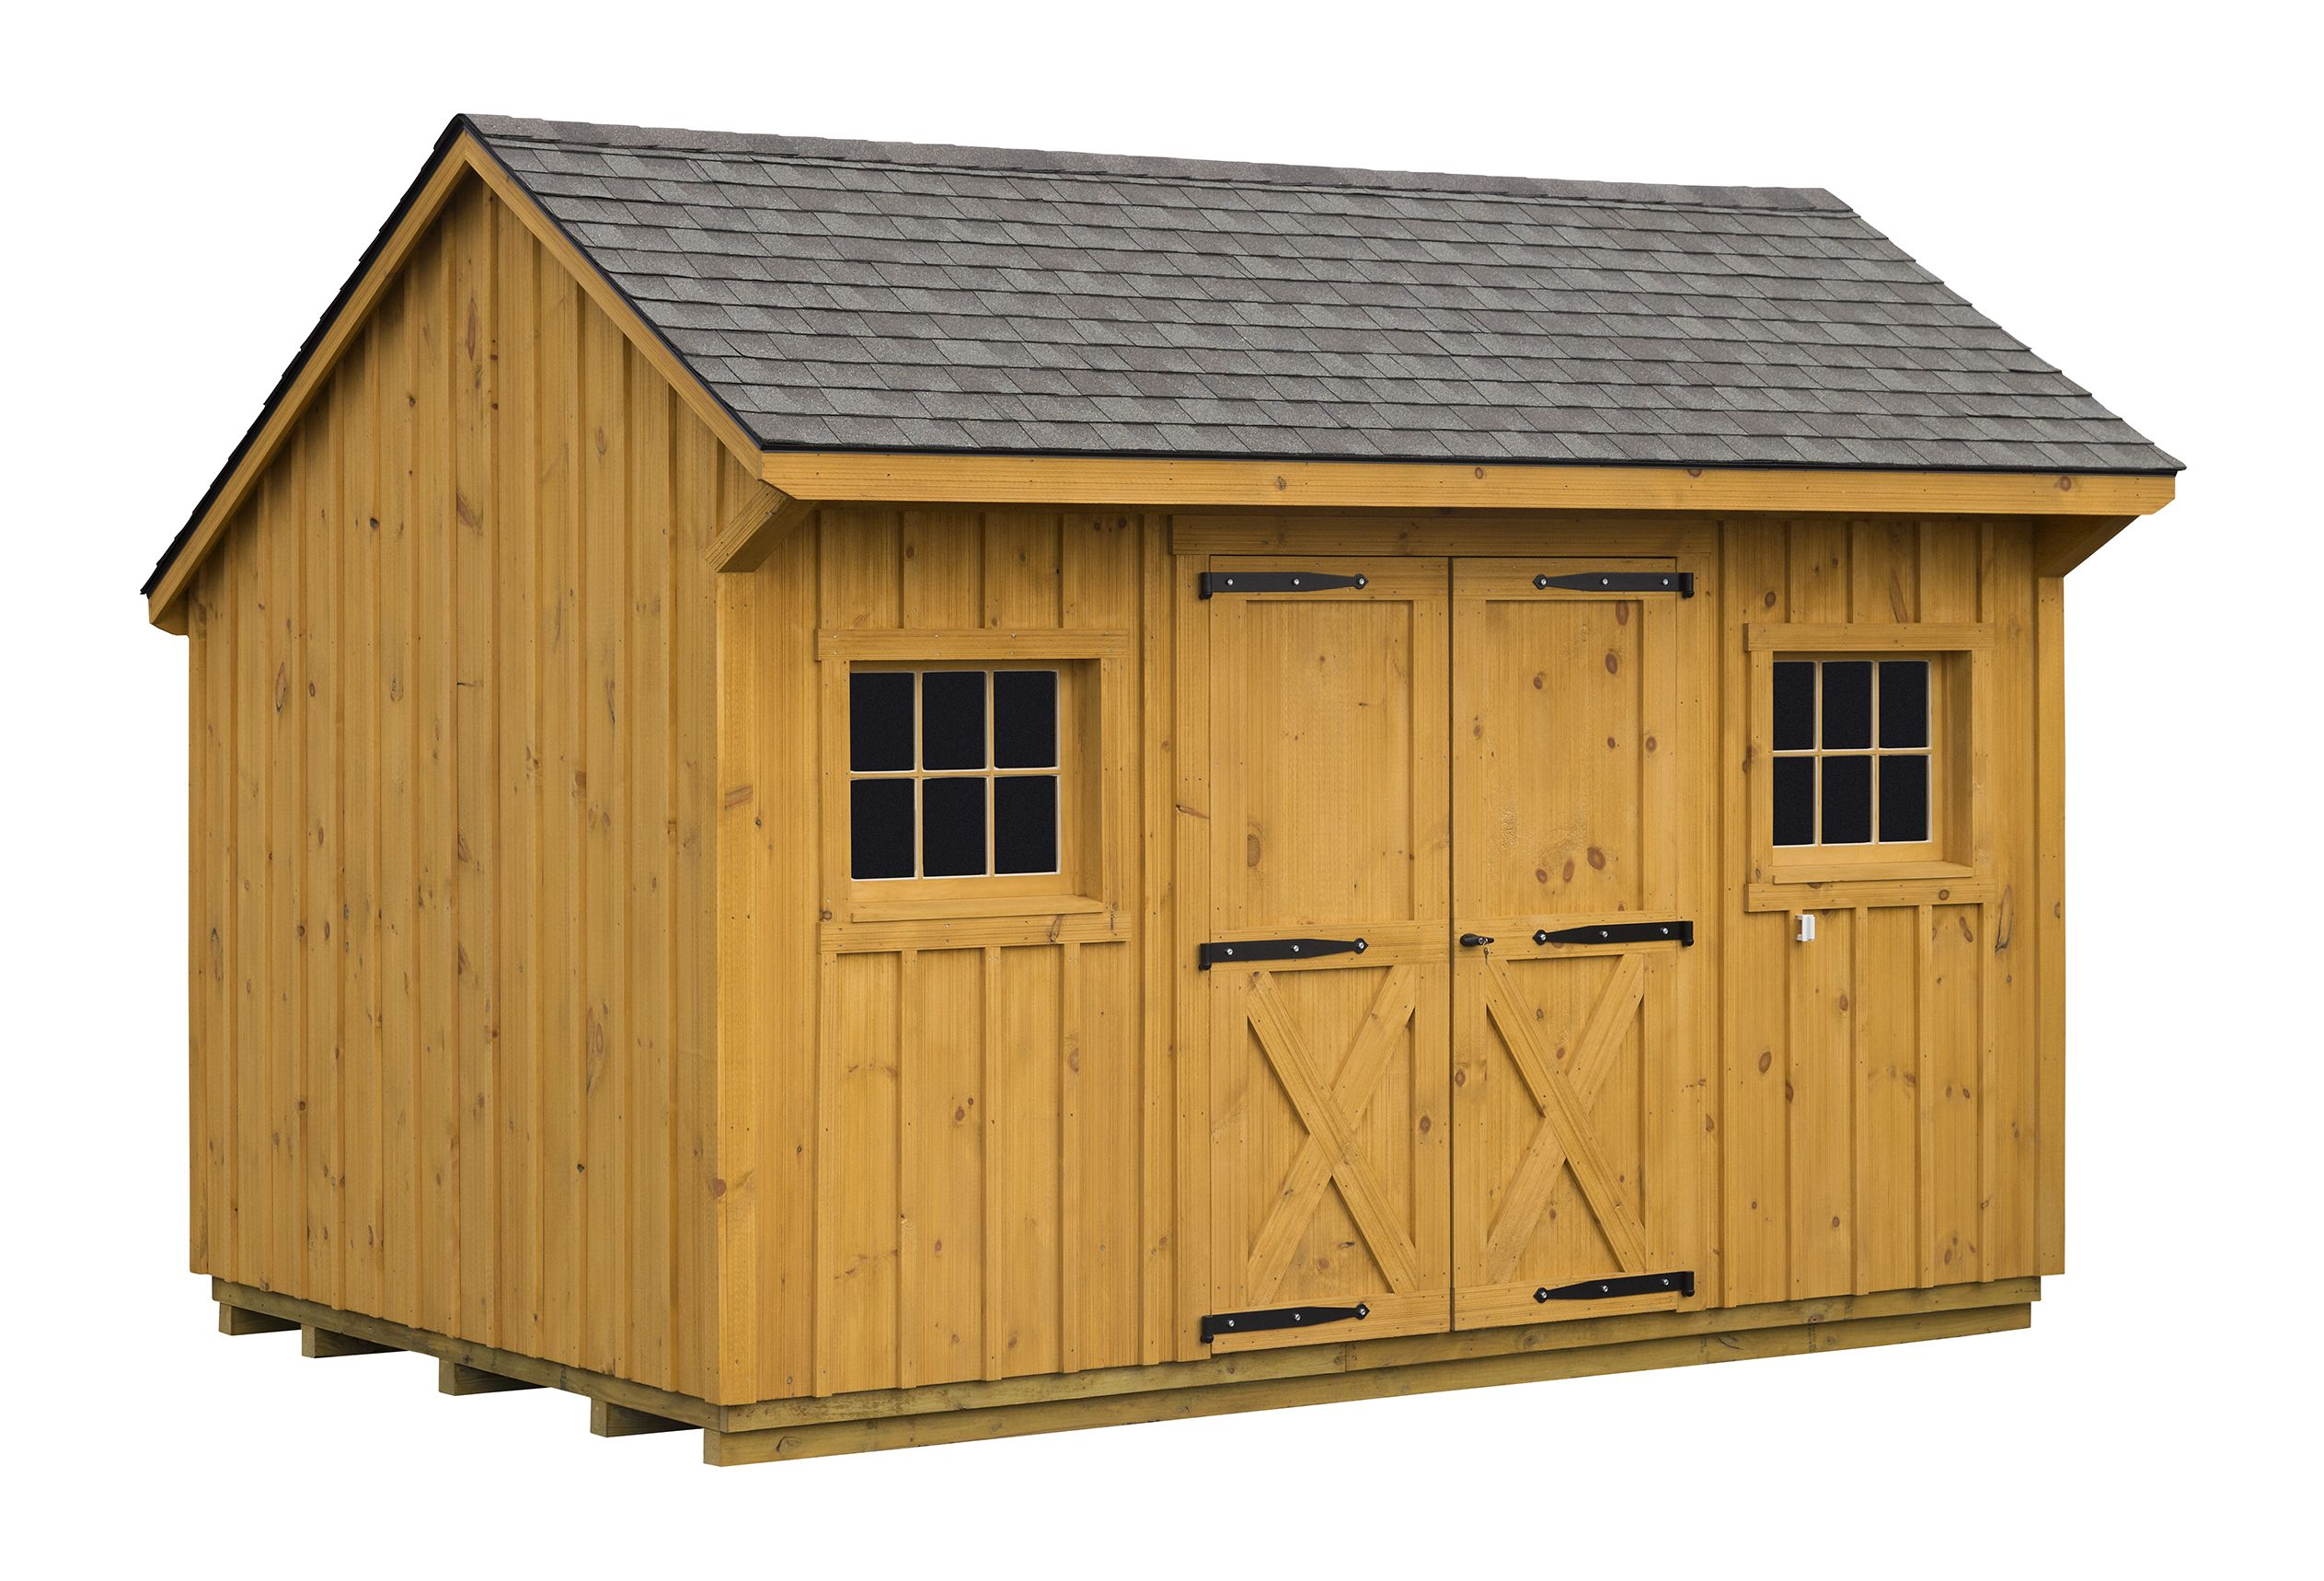 Horizon Structures 10x14 Pine Board And Batten Backyard Garden Shed Leave It Natural And Have Us Pai With Images Backyard Sheds Storage Shed Plans Storage Building Plans